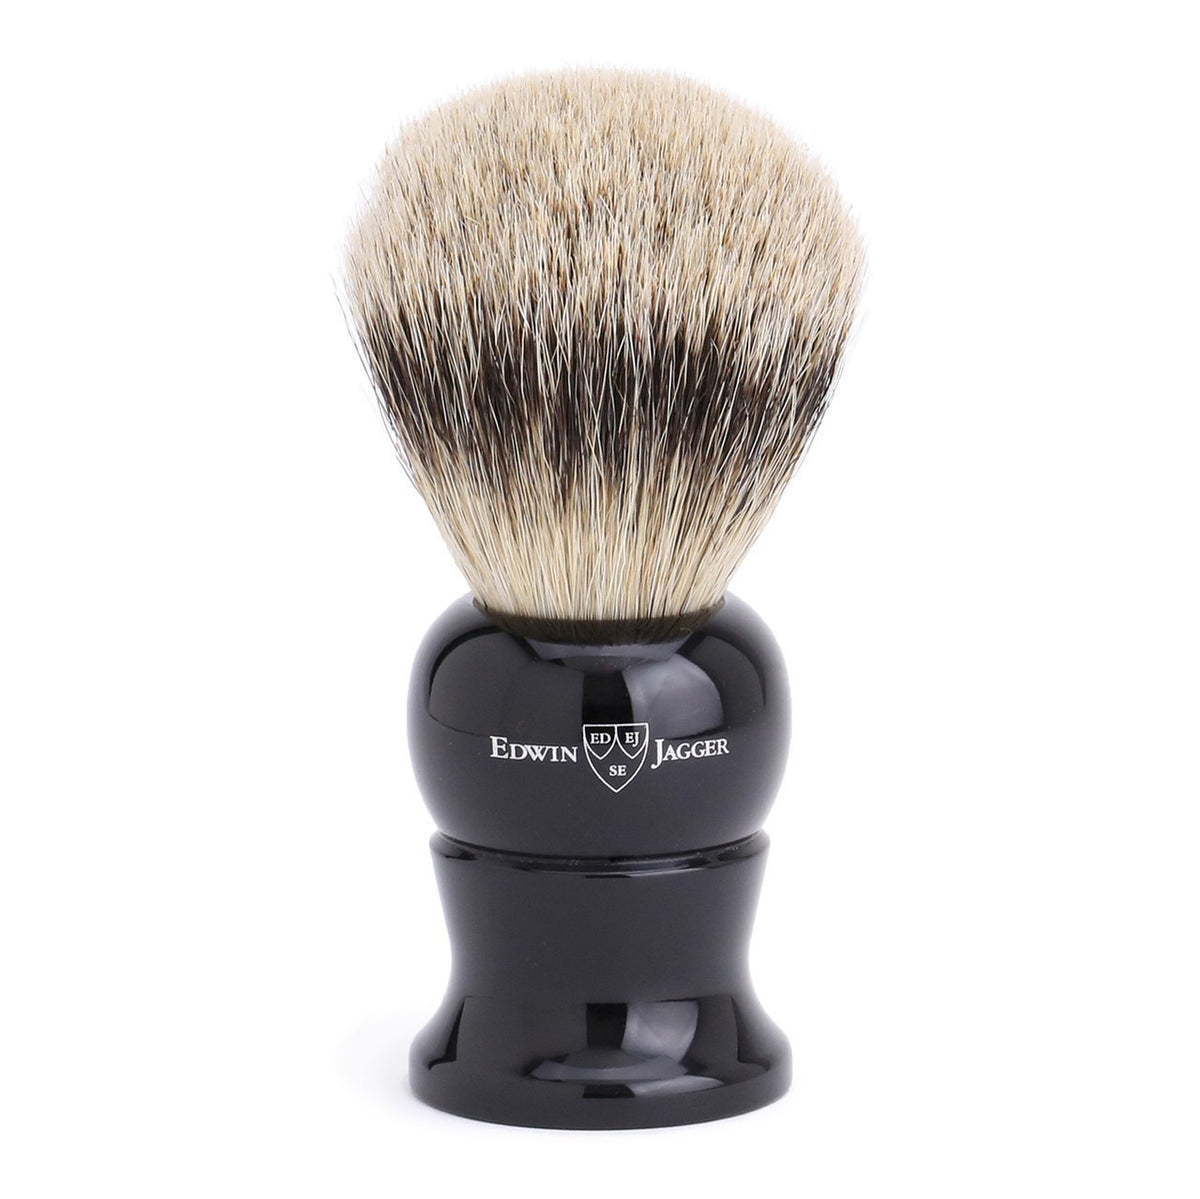 Edwin Jagger Super Badger Extra Large Shaving Brush - Imitation Ebony